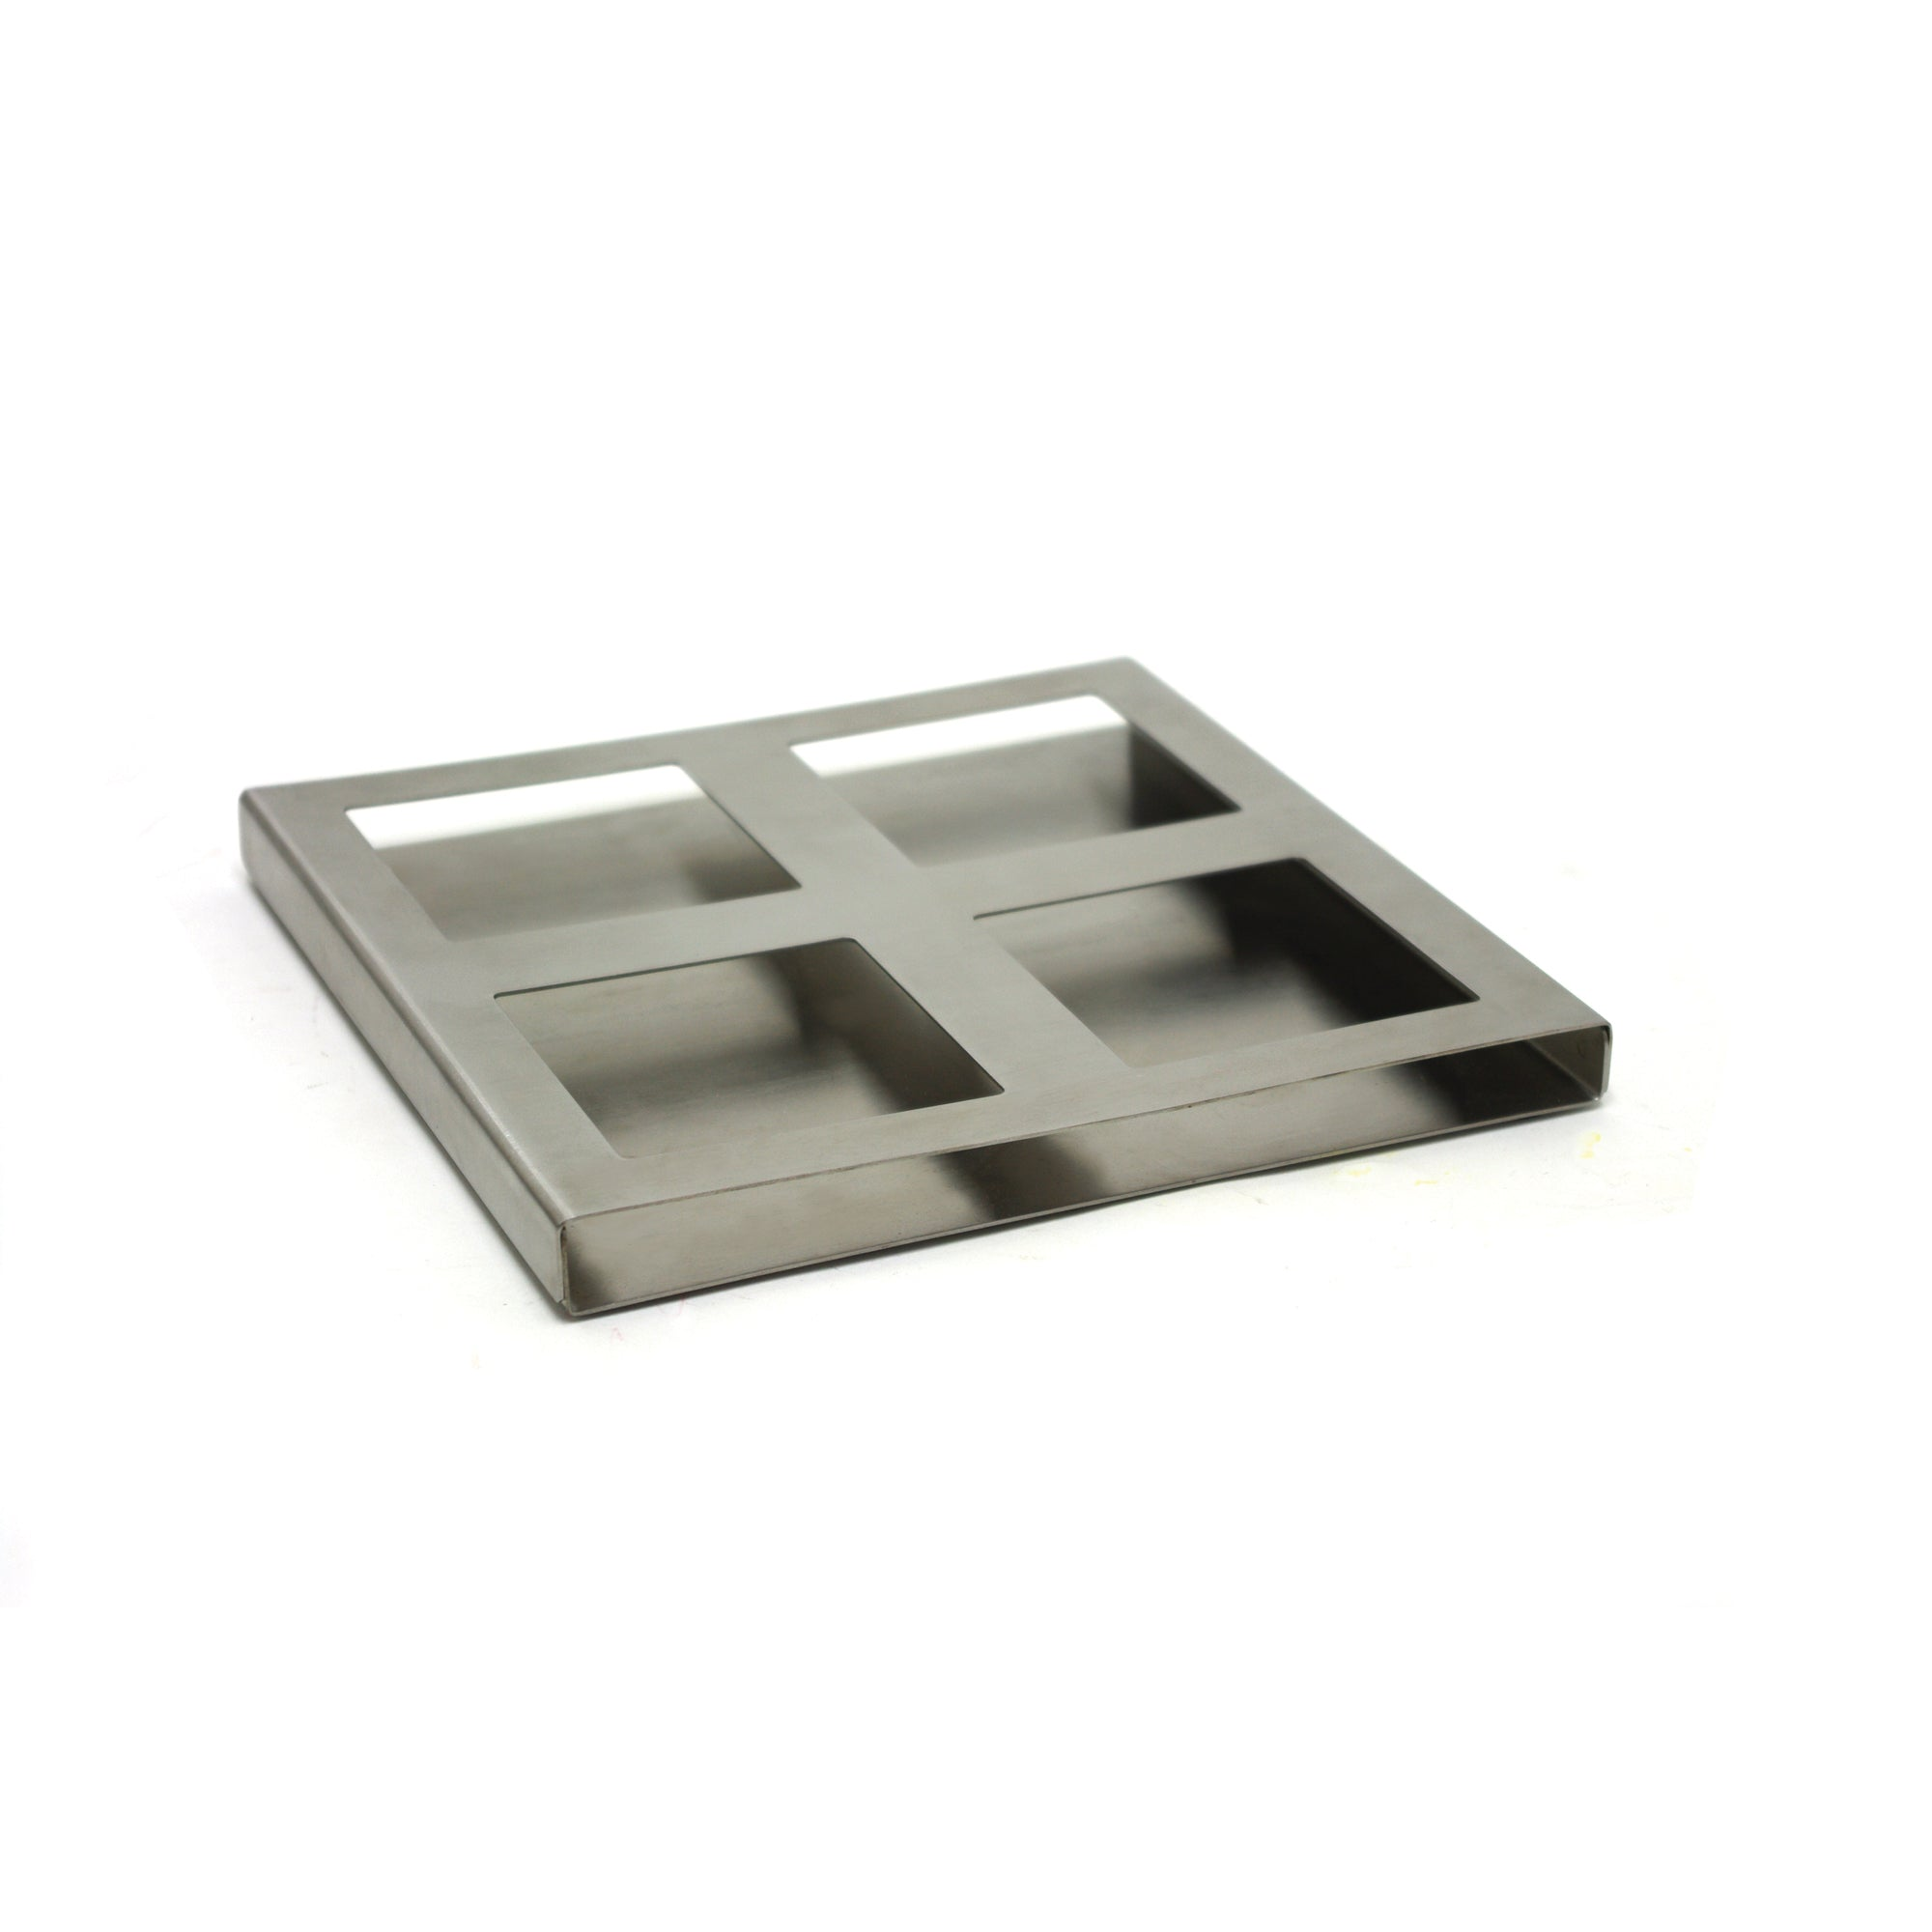 FOH Stainless Steel Dish Holder / Quad